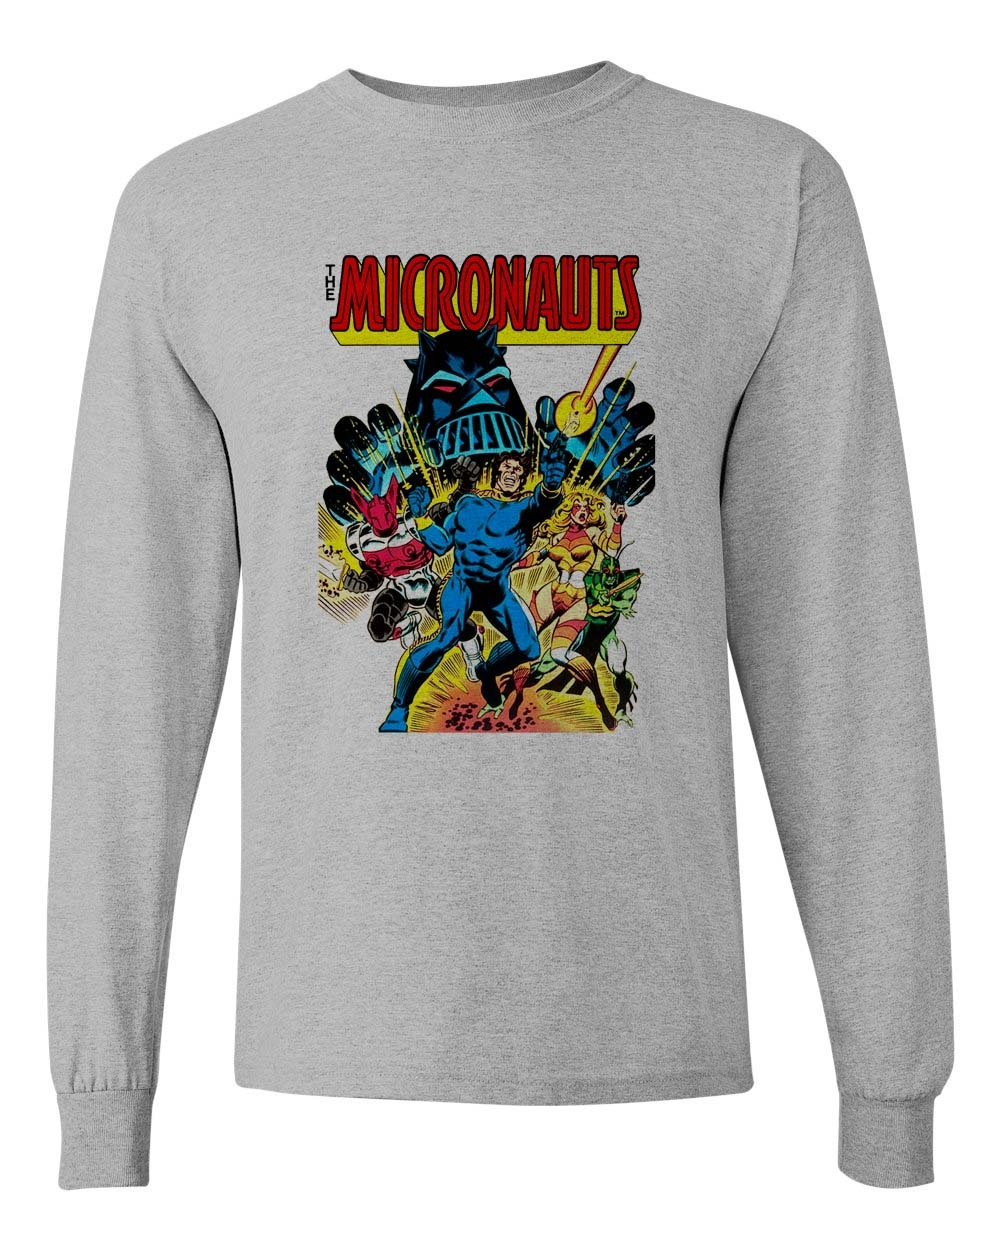 Ve t shirt marvel comics nostalgic toys 1980 s comic book for sale online graphic tee store gray